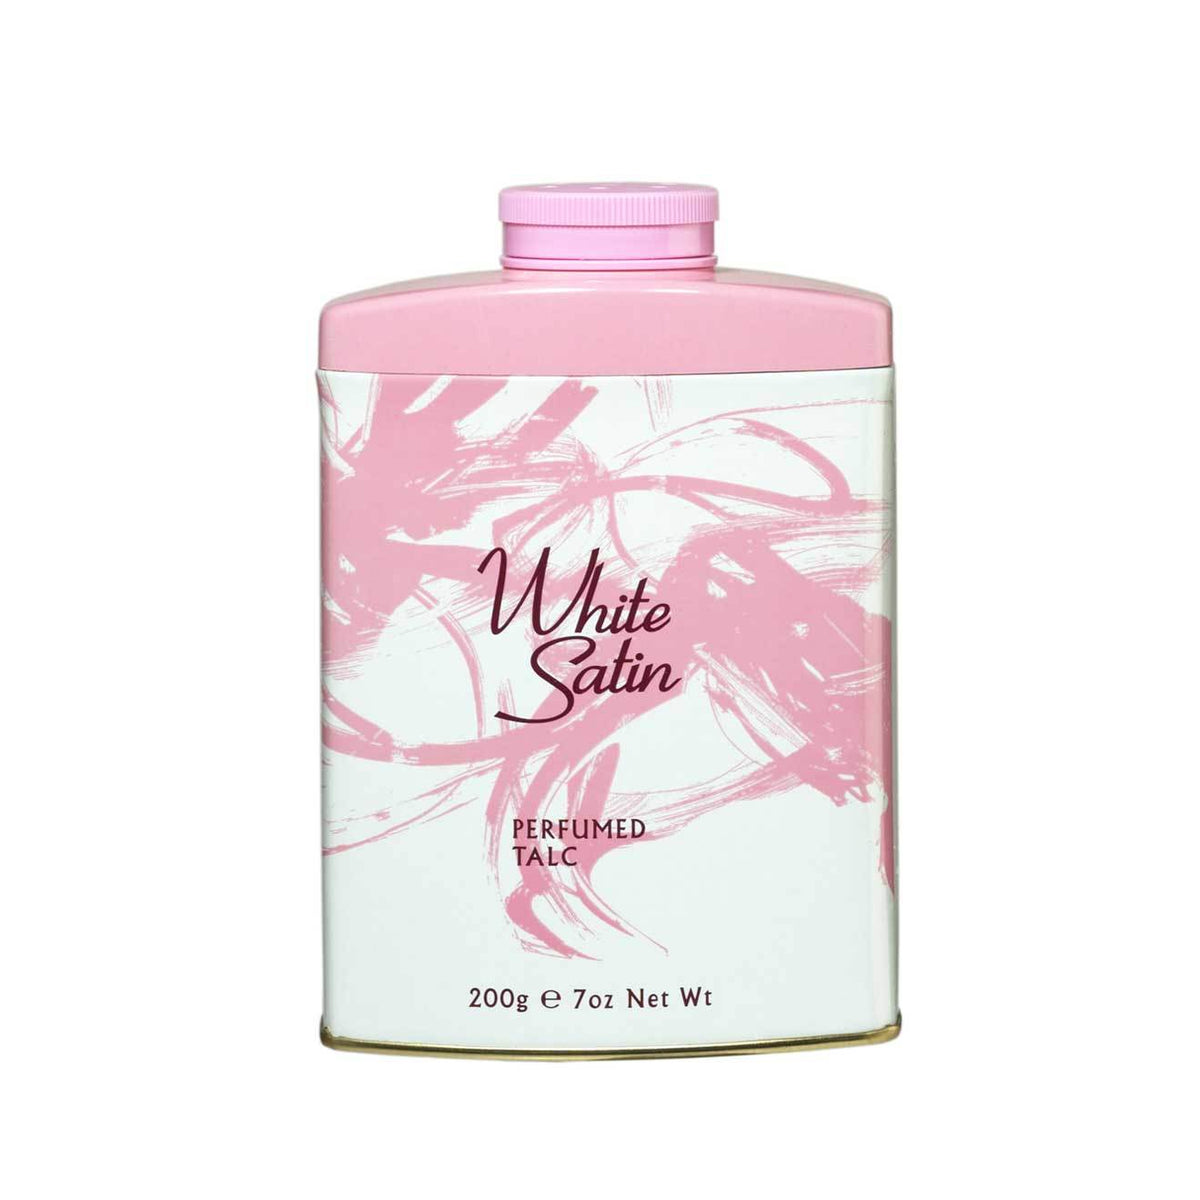 White Satin Perfumed Talc 200g